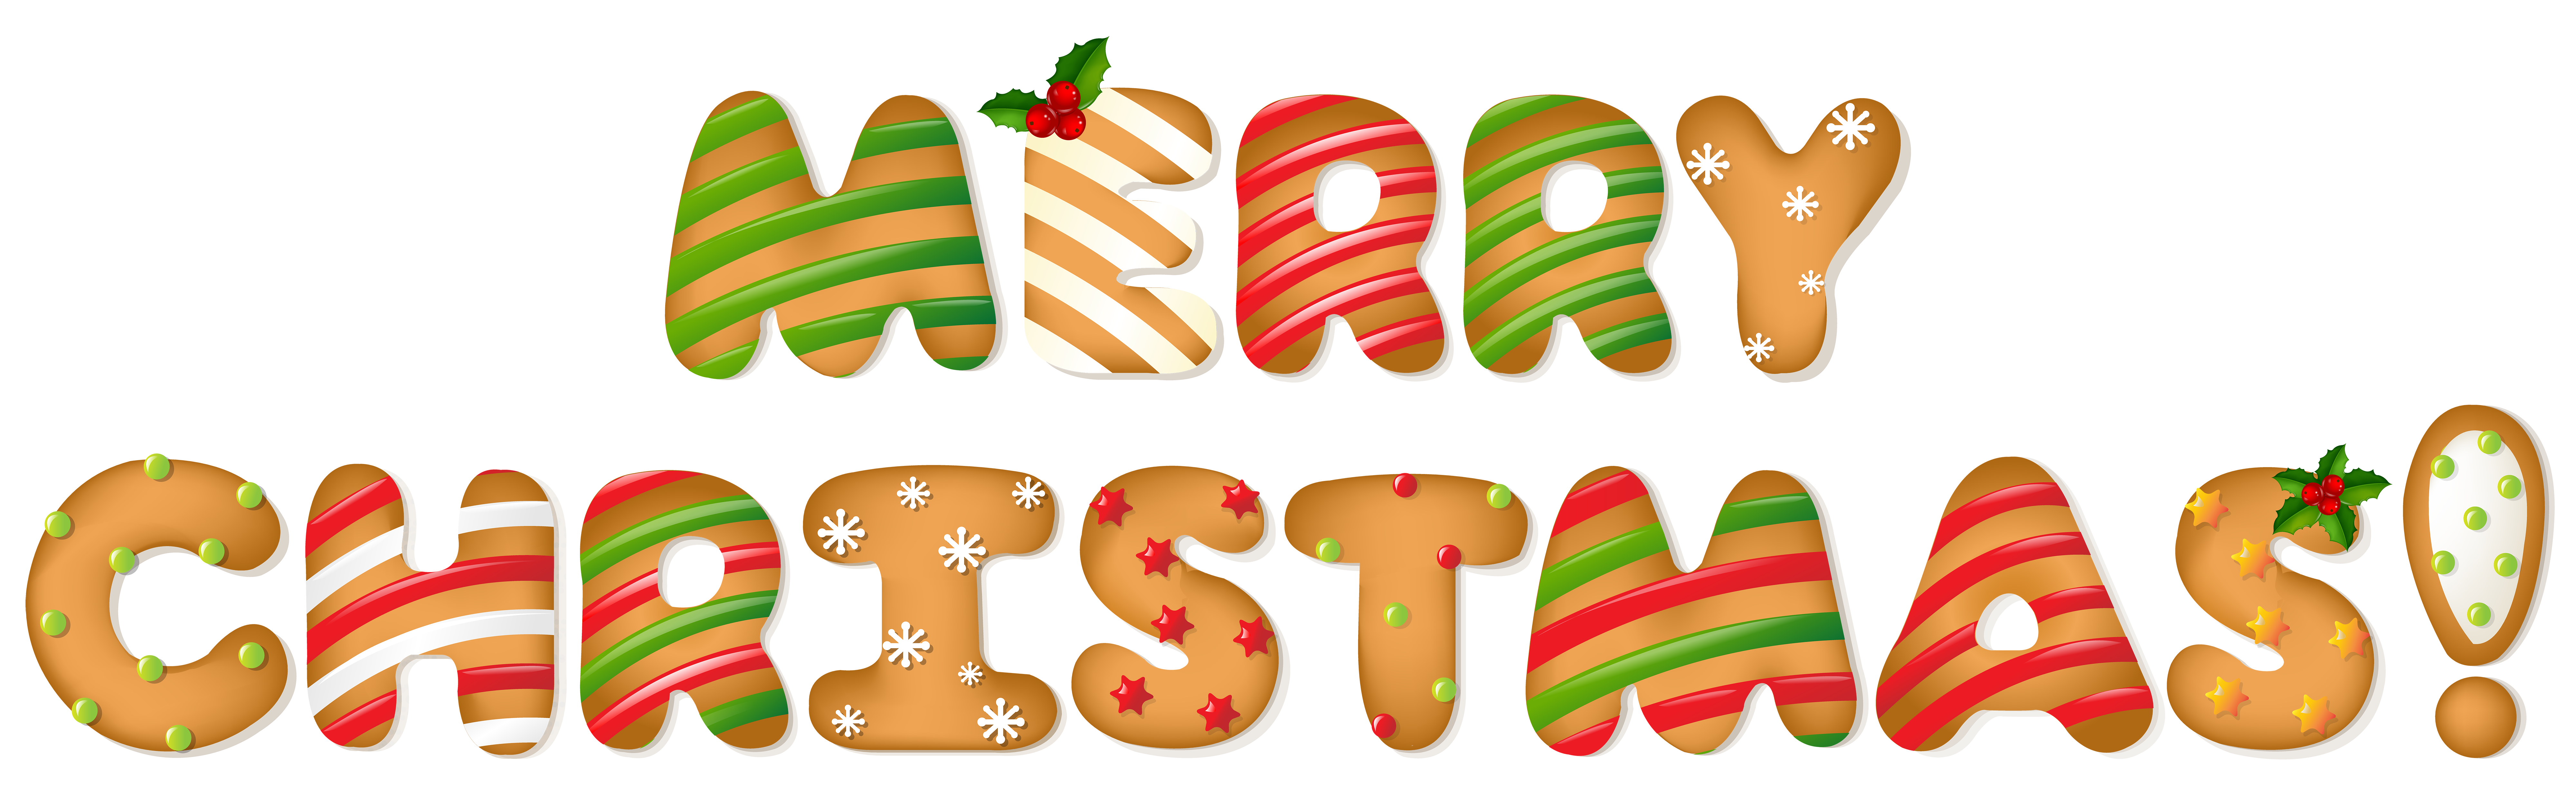 Merry christmas hd clipart banner free stock Merry Christmas Clip Art   Free Download Clip Art   Free ... banner free stock